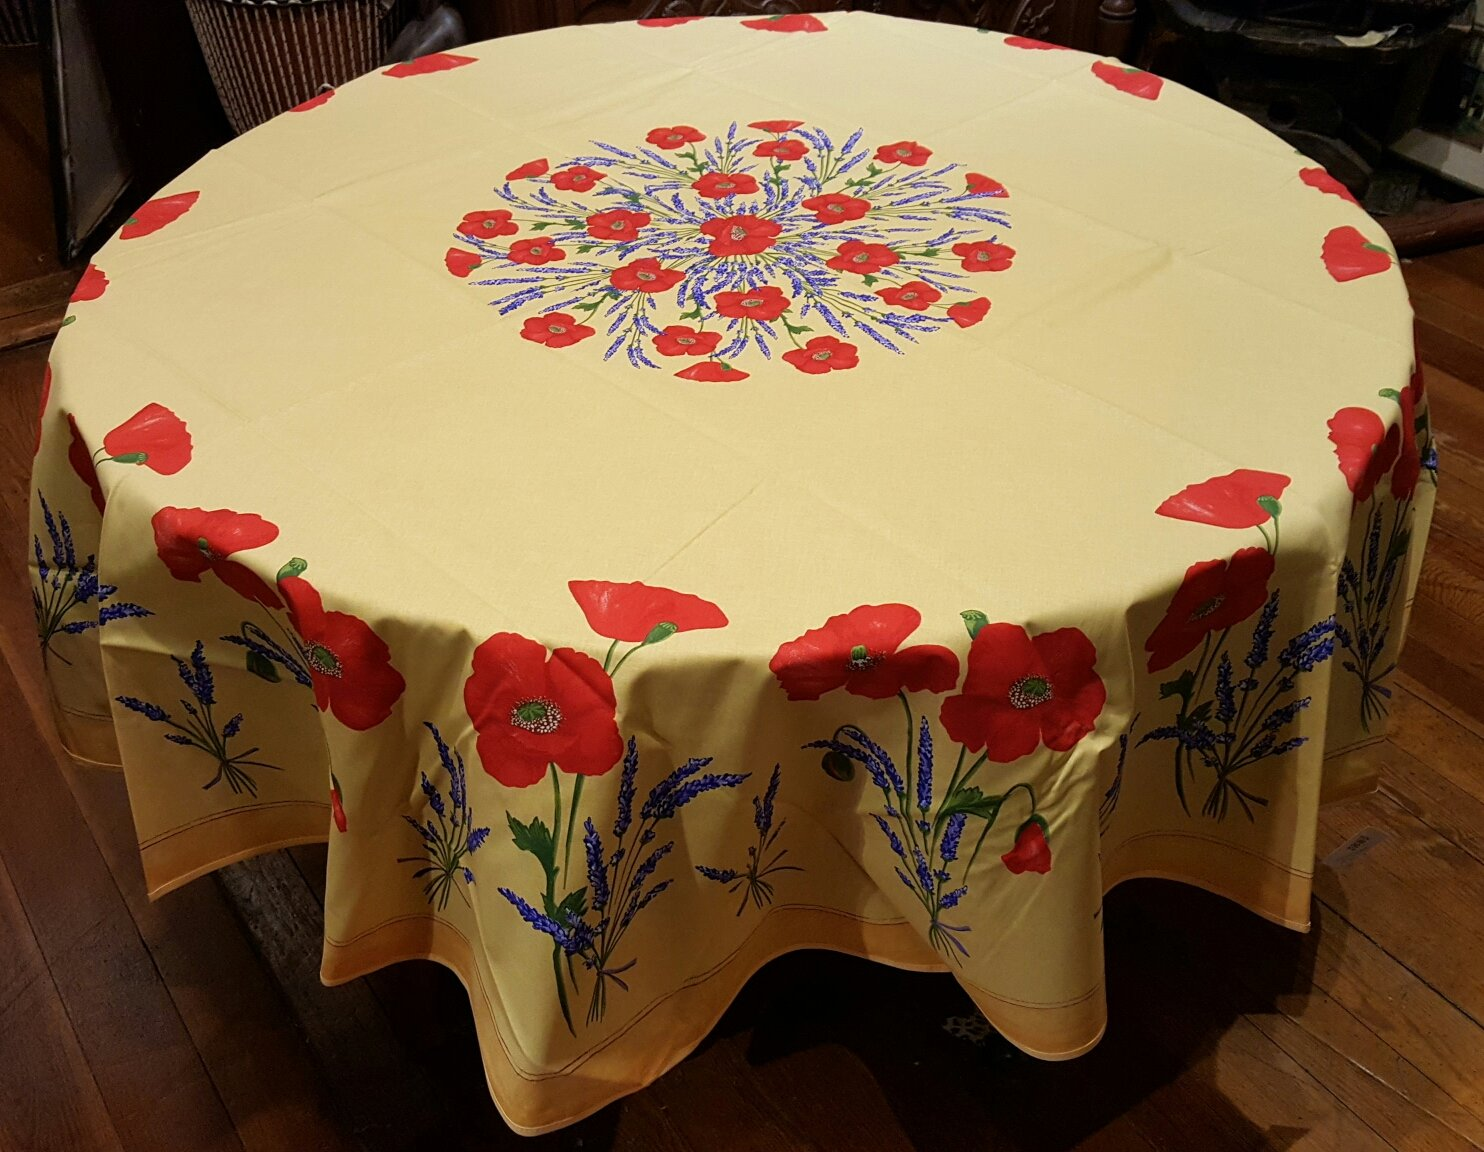 70 French Acrylic-Coated Round Tablecloth Poppy (Gold)